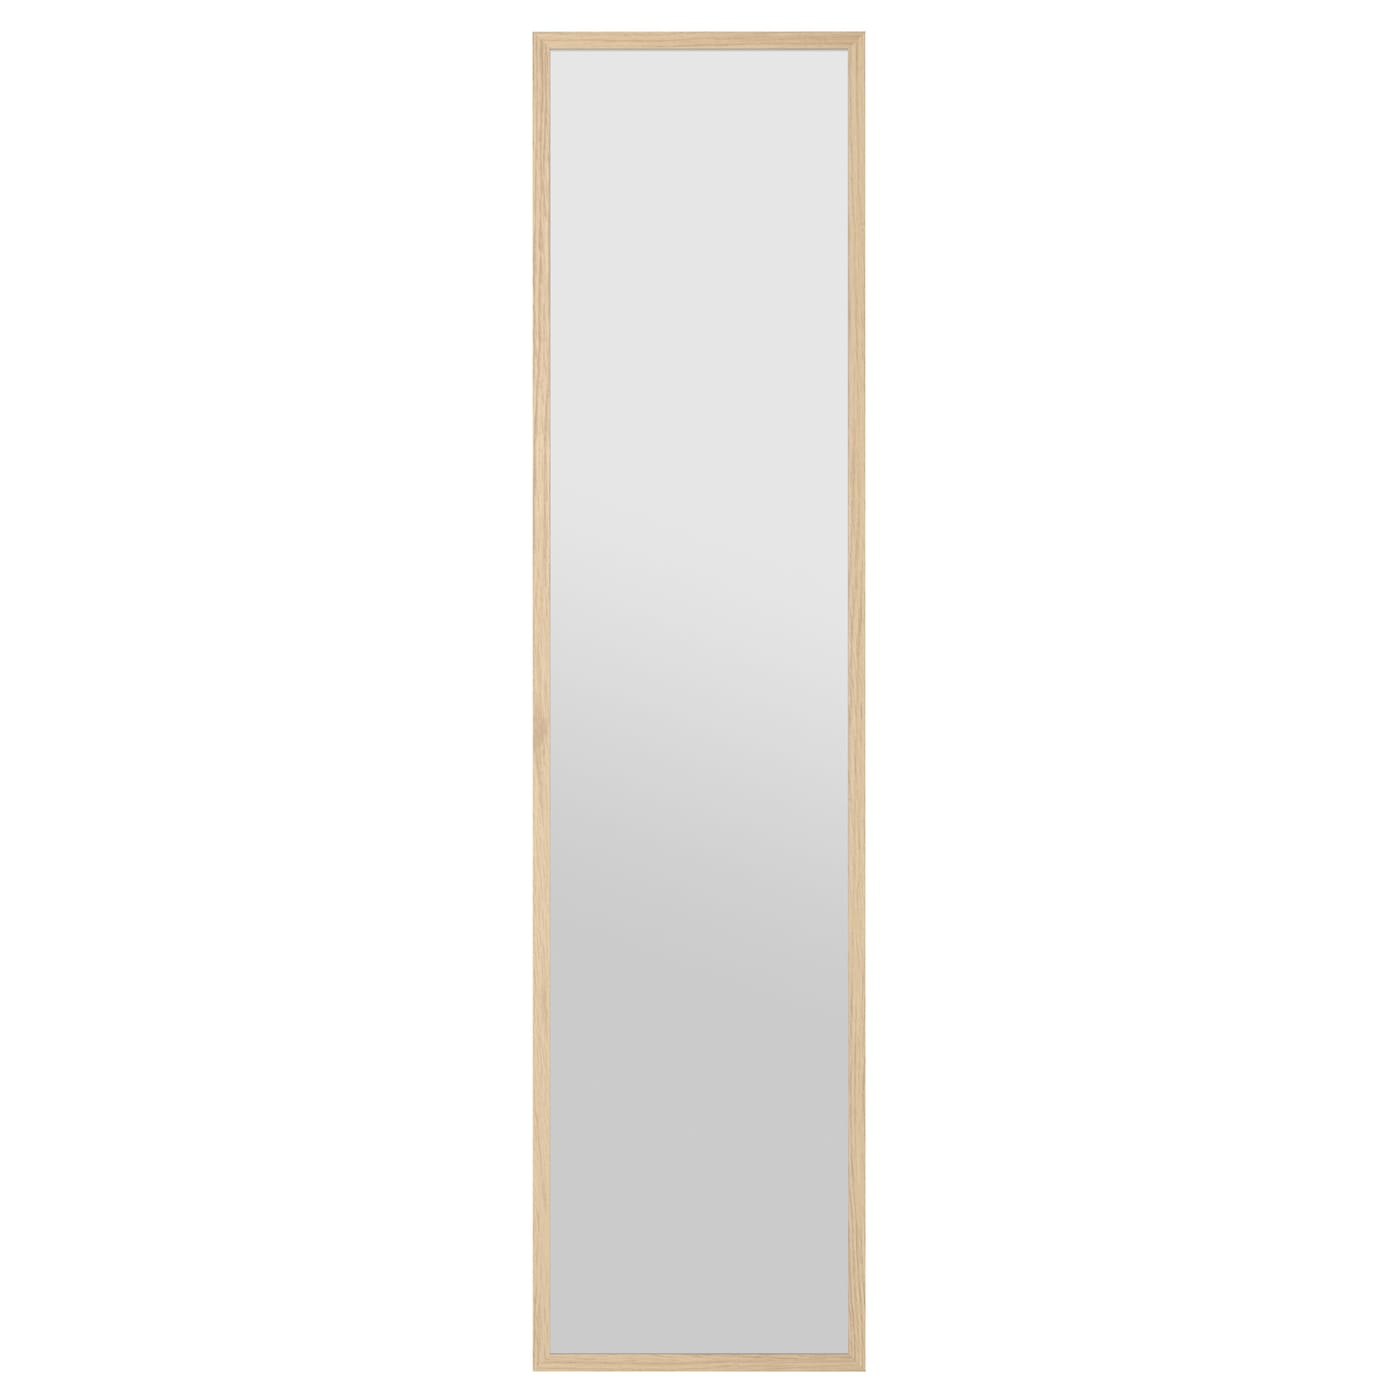 stave mirror white stained oak effect 40x160 cm ikea